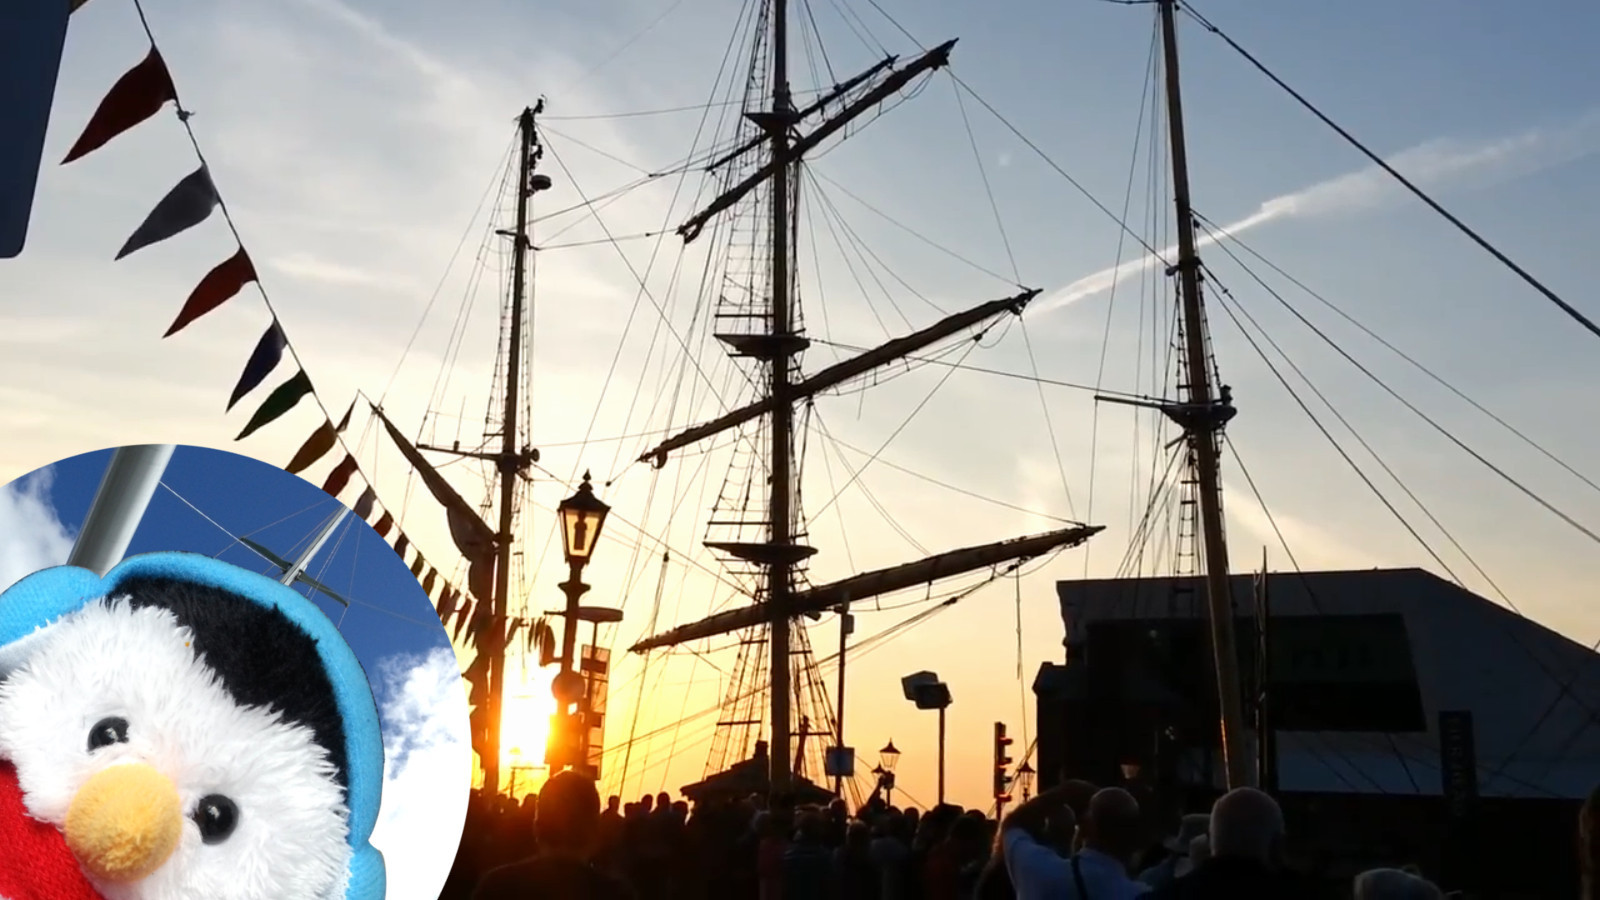 Watch Tall Ships in Liverpool in full screen mode and add comments etc.